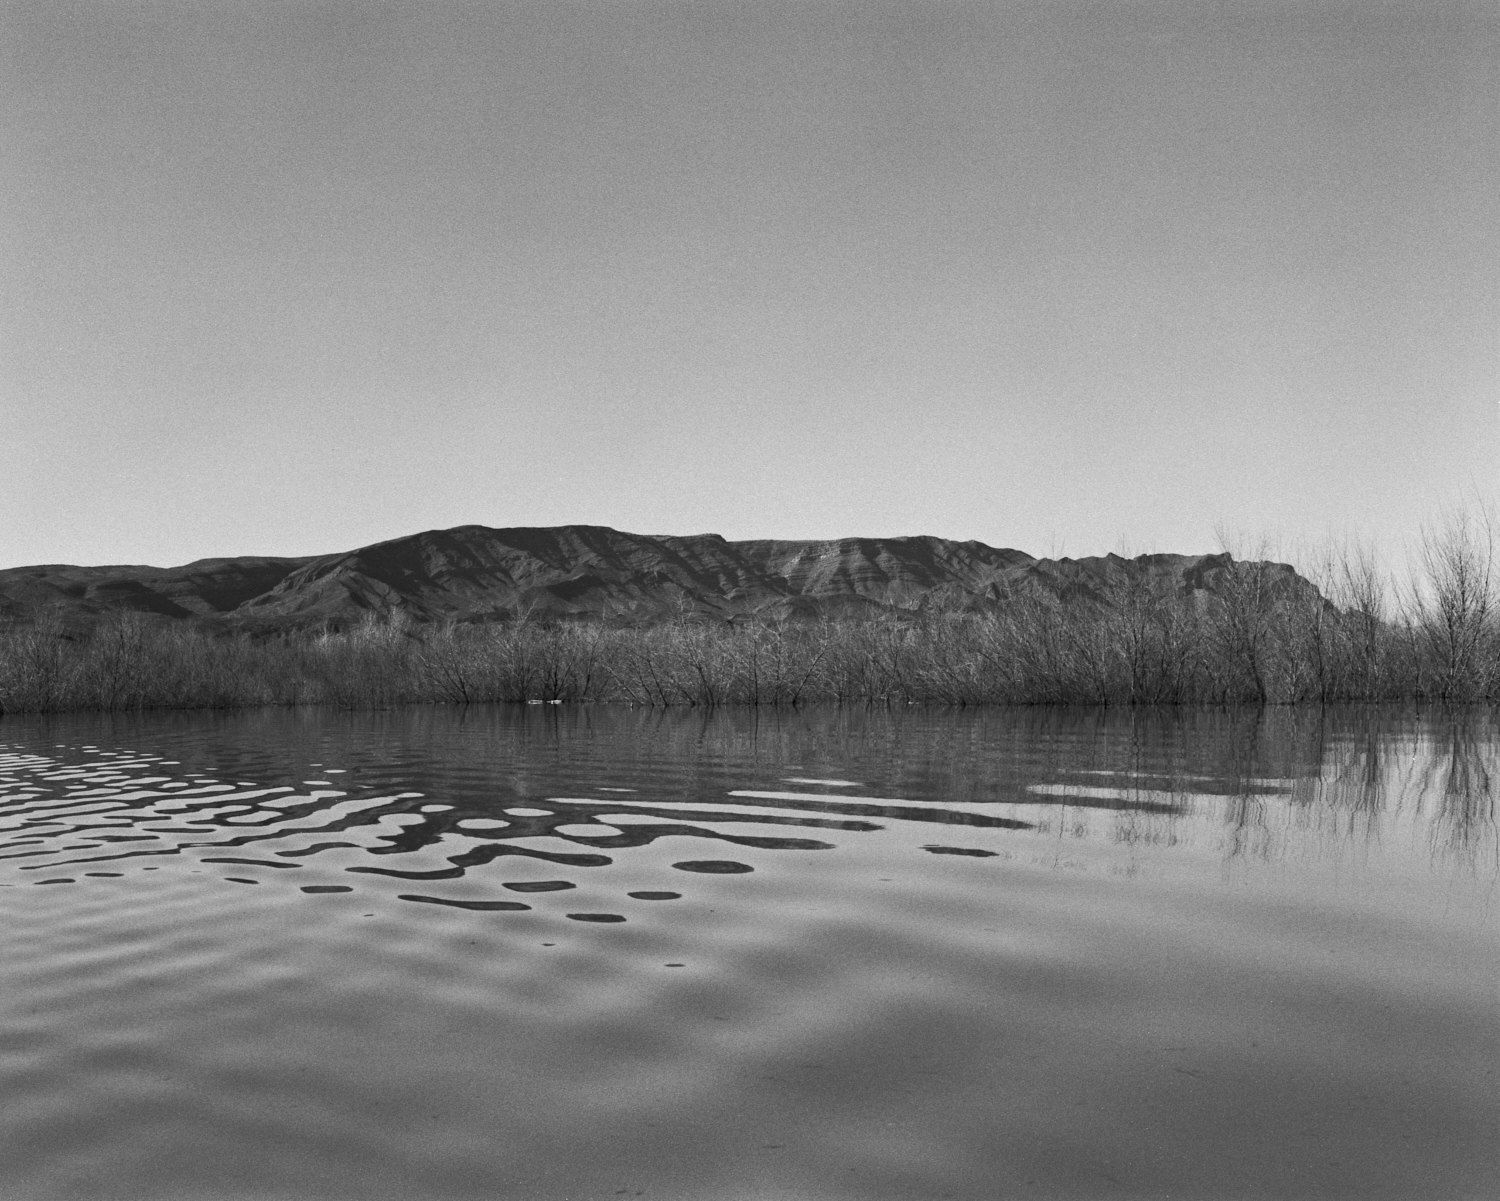 A black-and-white image of a butte surrounded by water